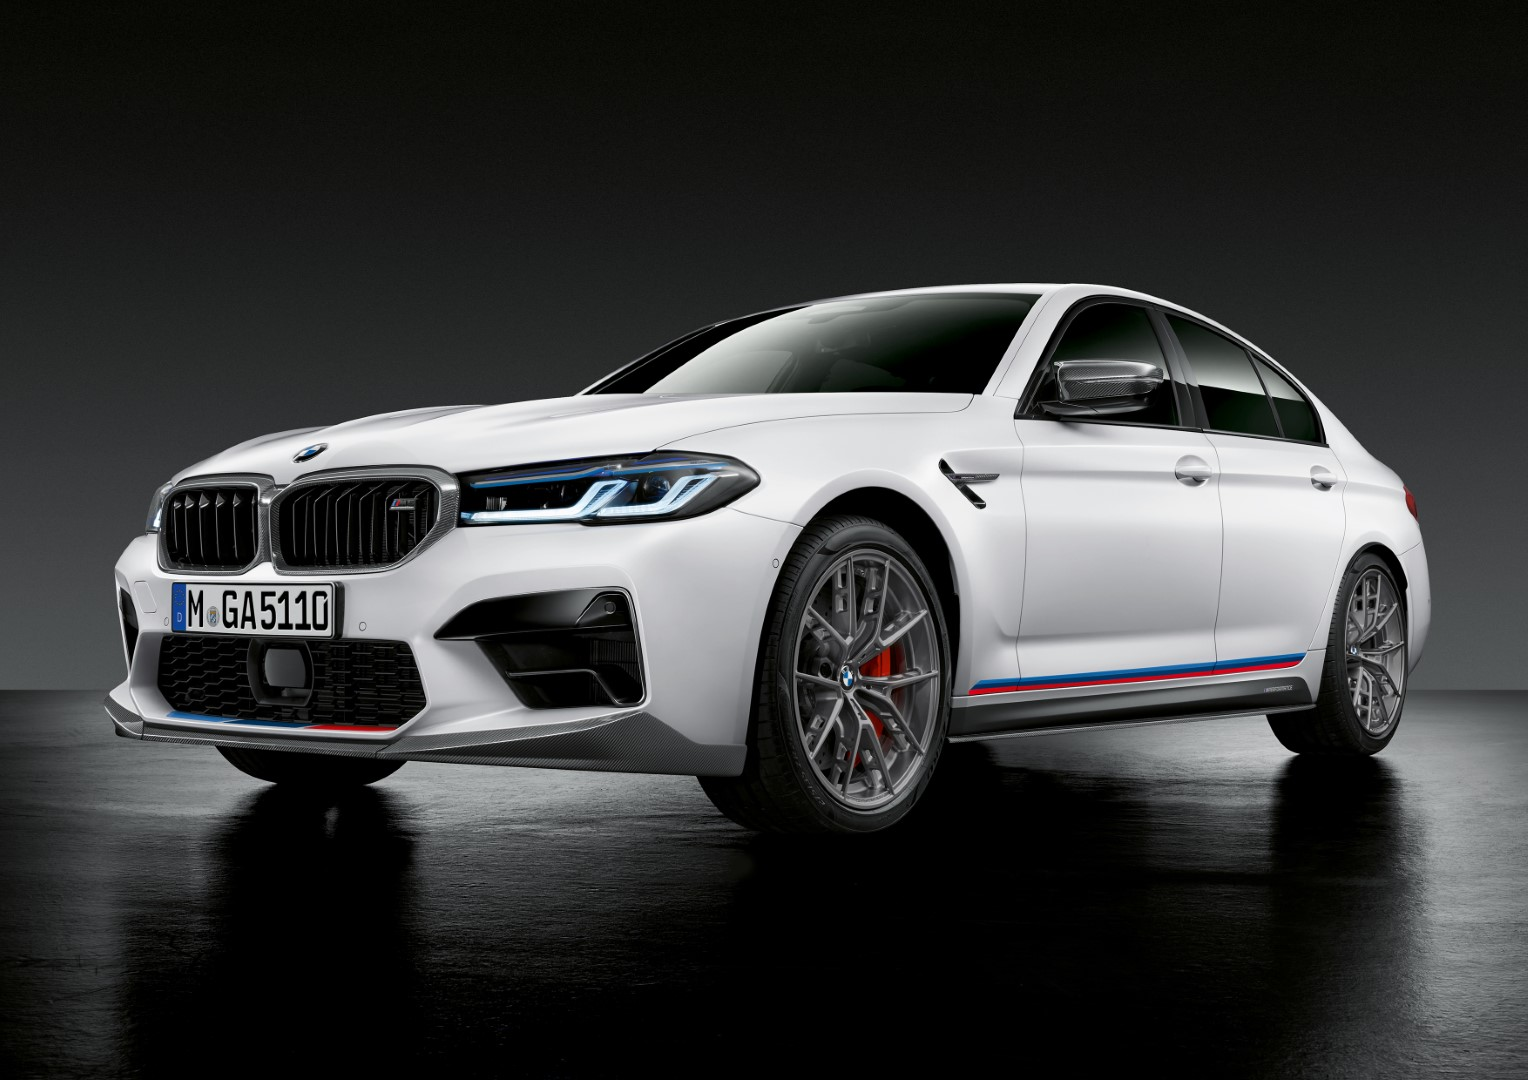 Bmw Reveals M Performance Parts For Lci M5